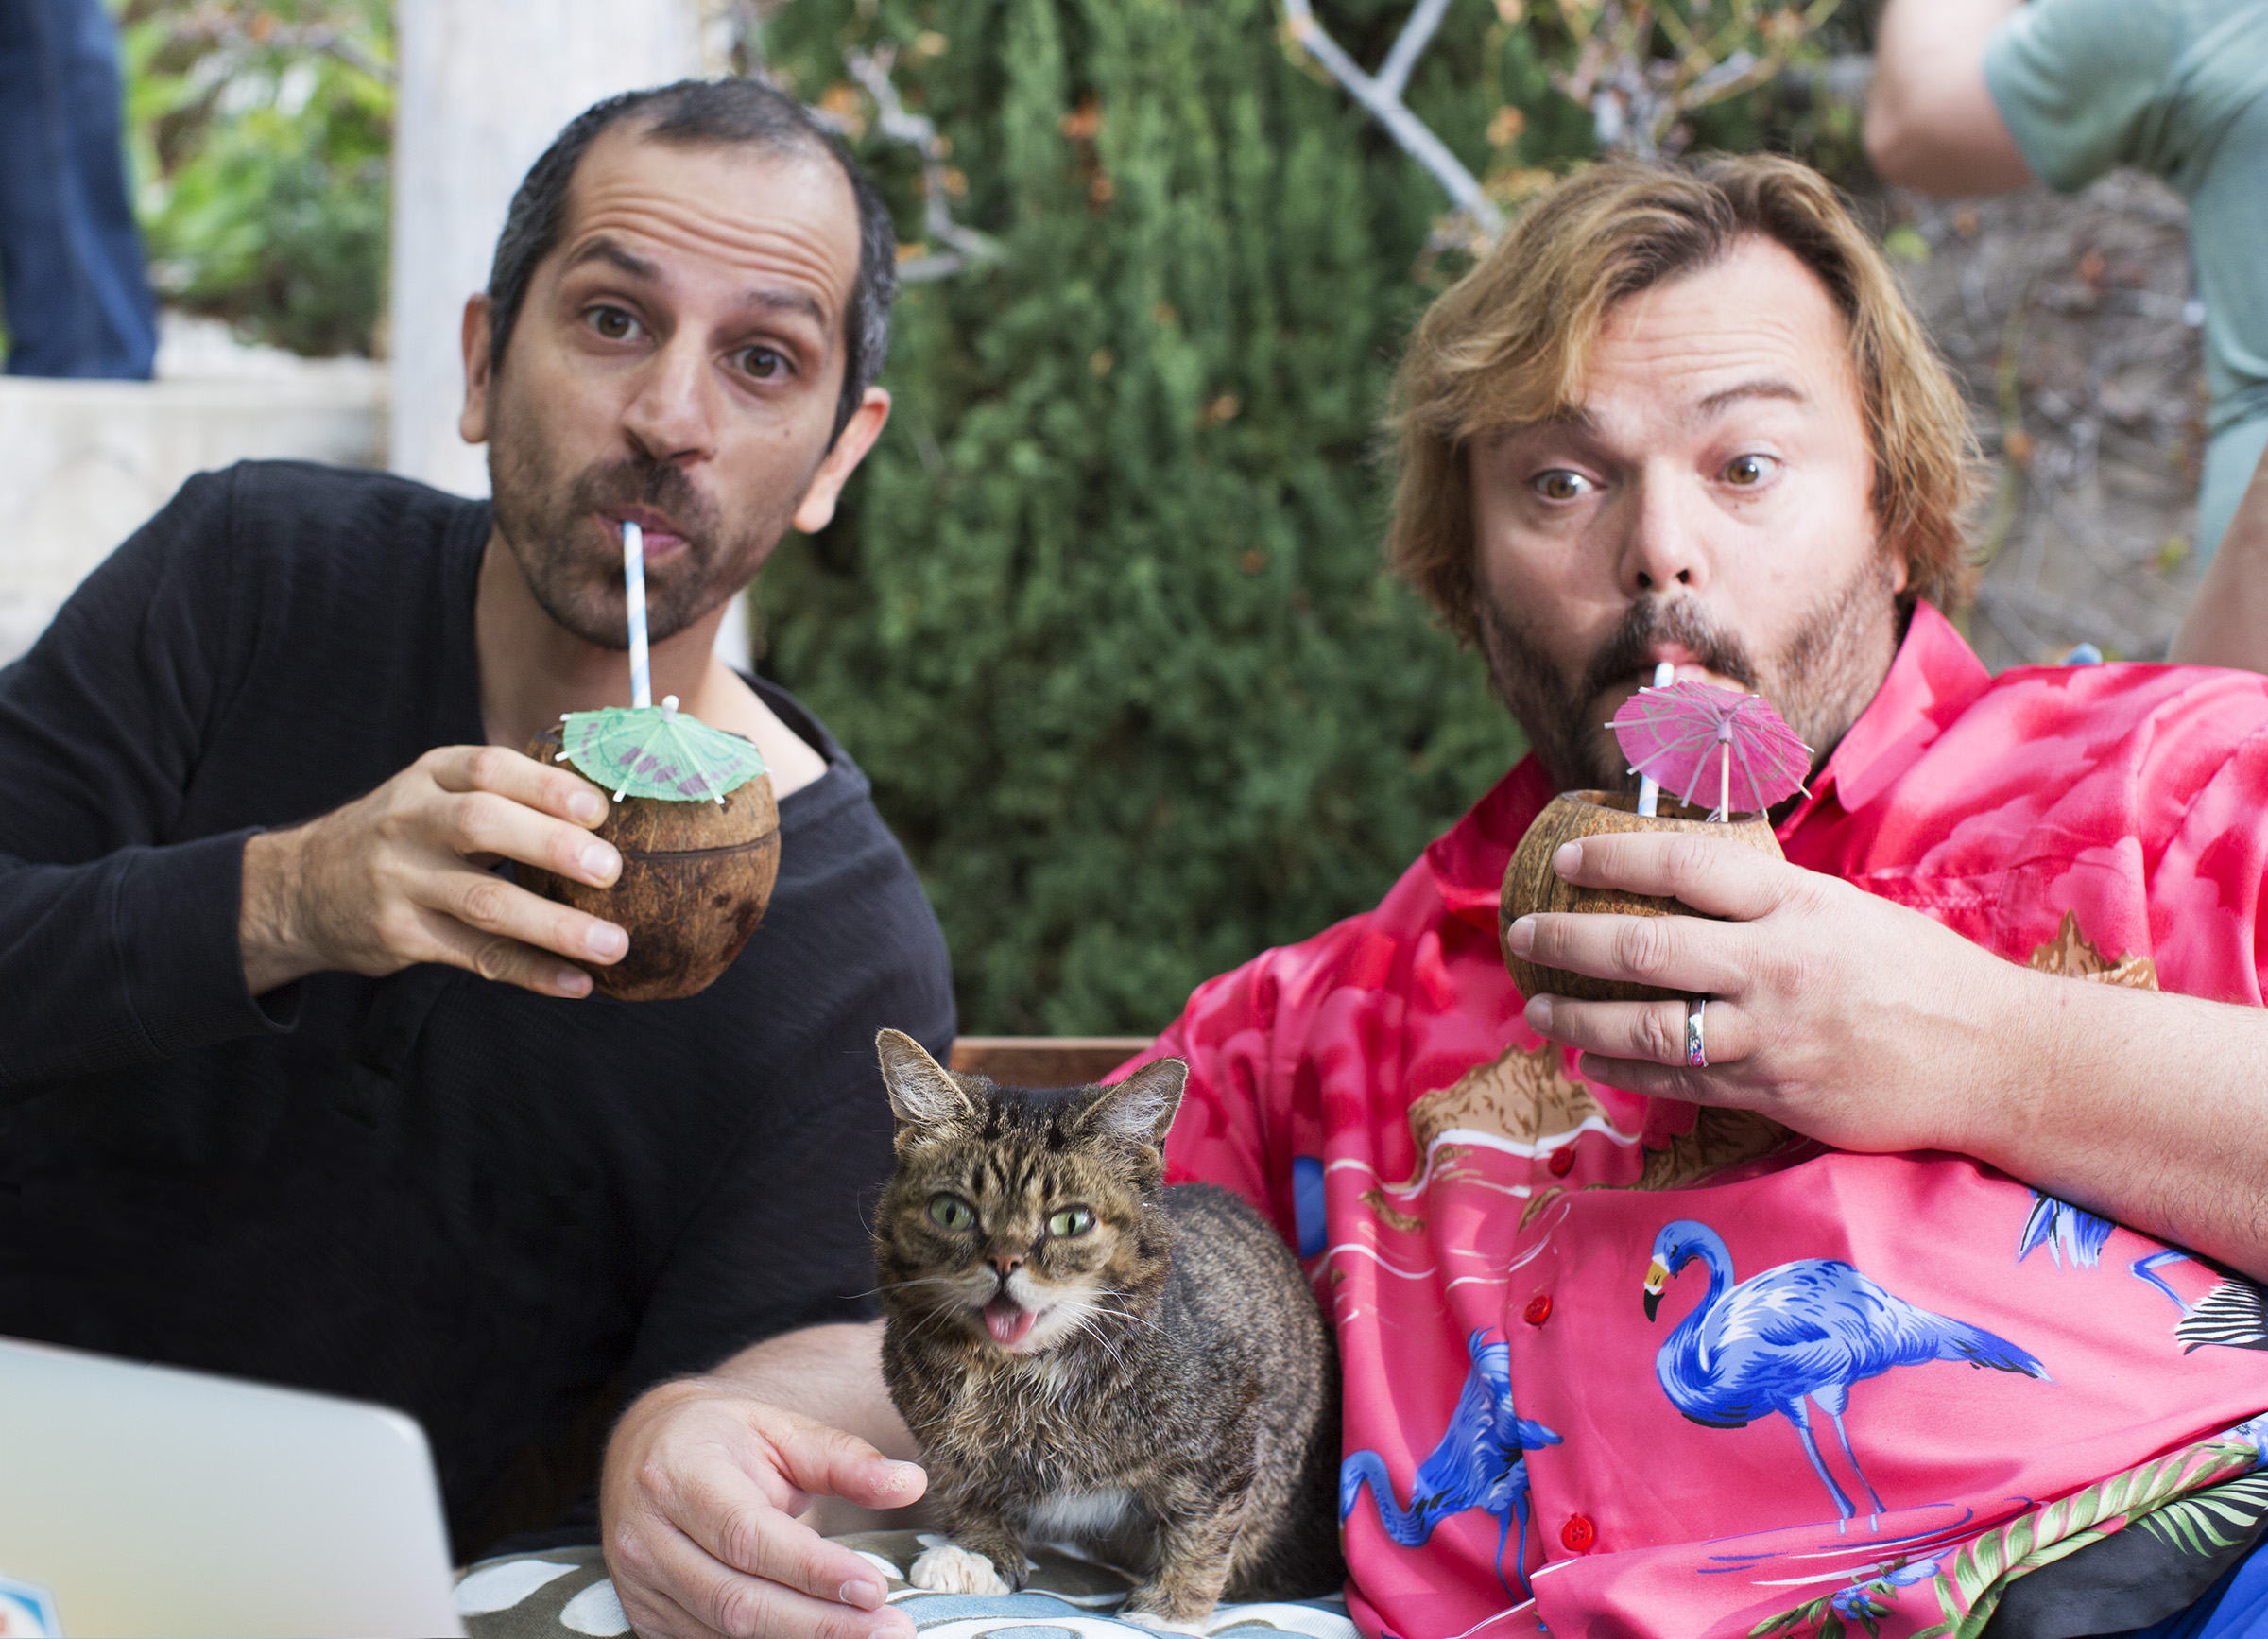 Writer/Director Nirvan on set of  COP22 Video  with Jack Black and Lil Bub.